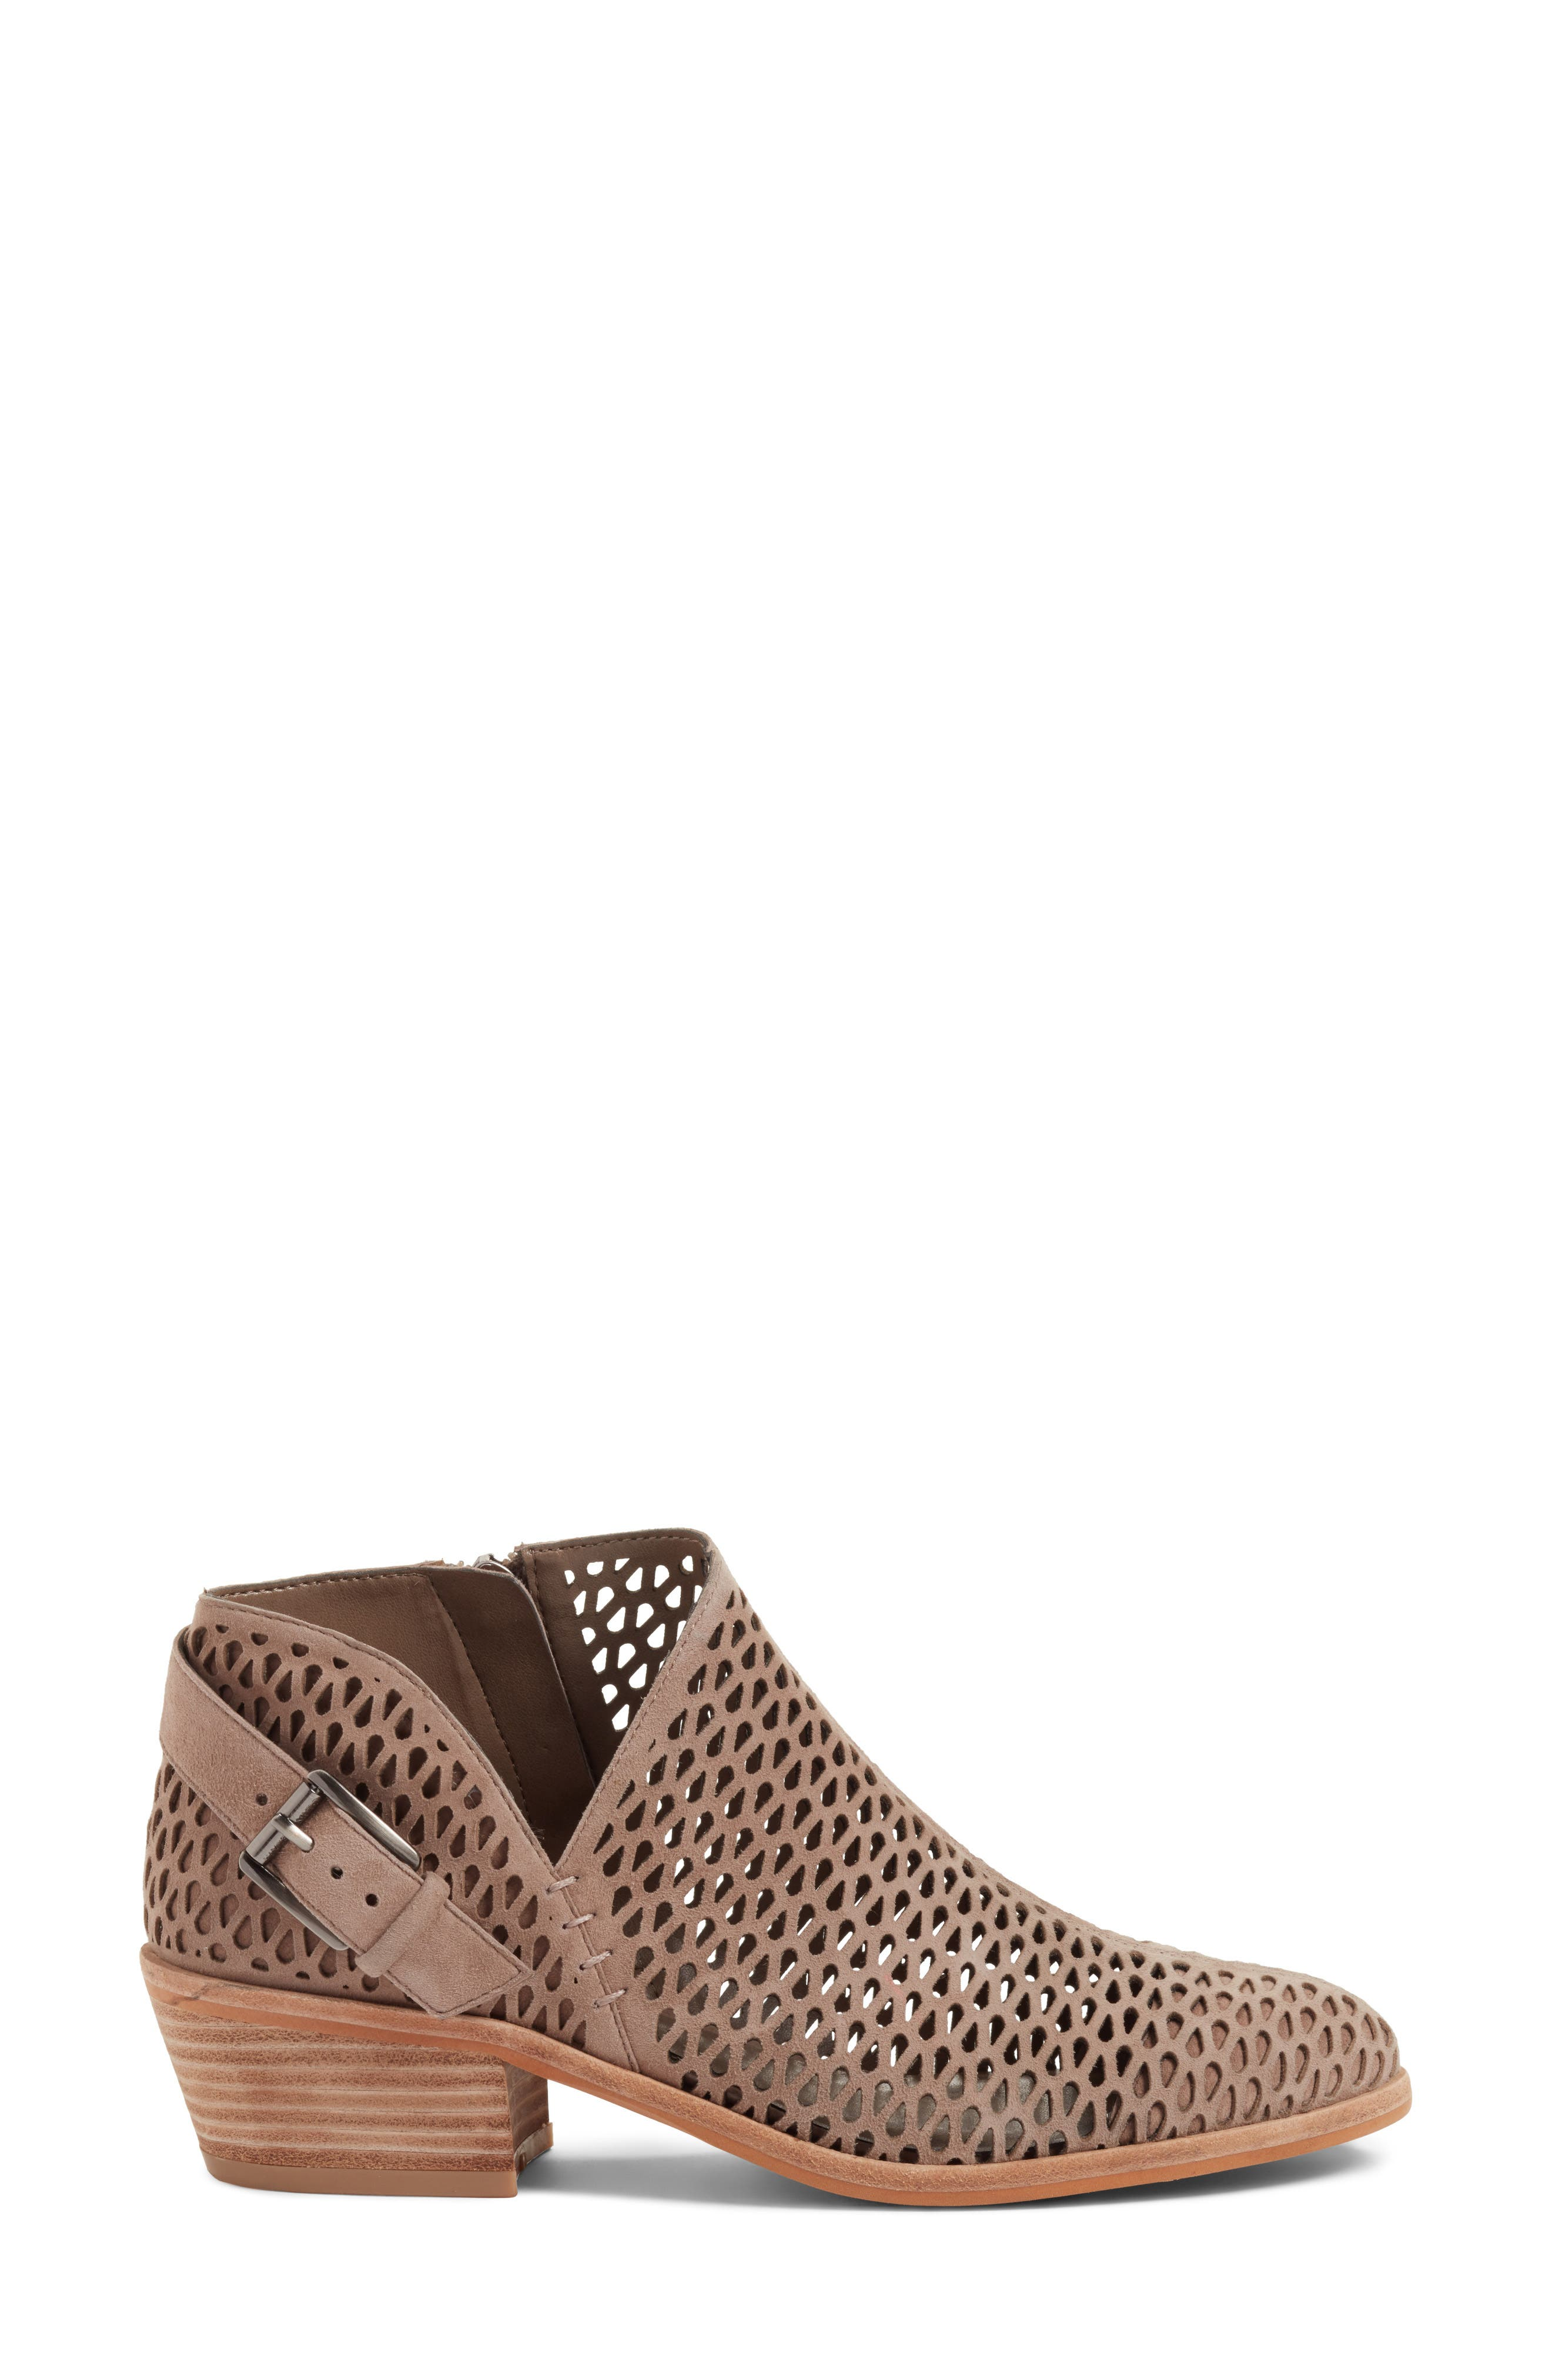 Phandra Bootie,                             Alternate thumbnail 3, color,                             Urban Lux Suede